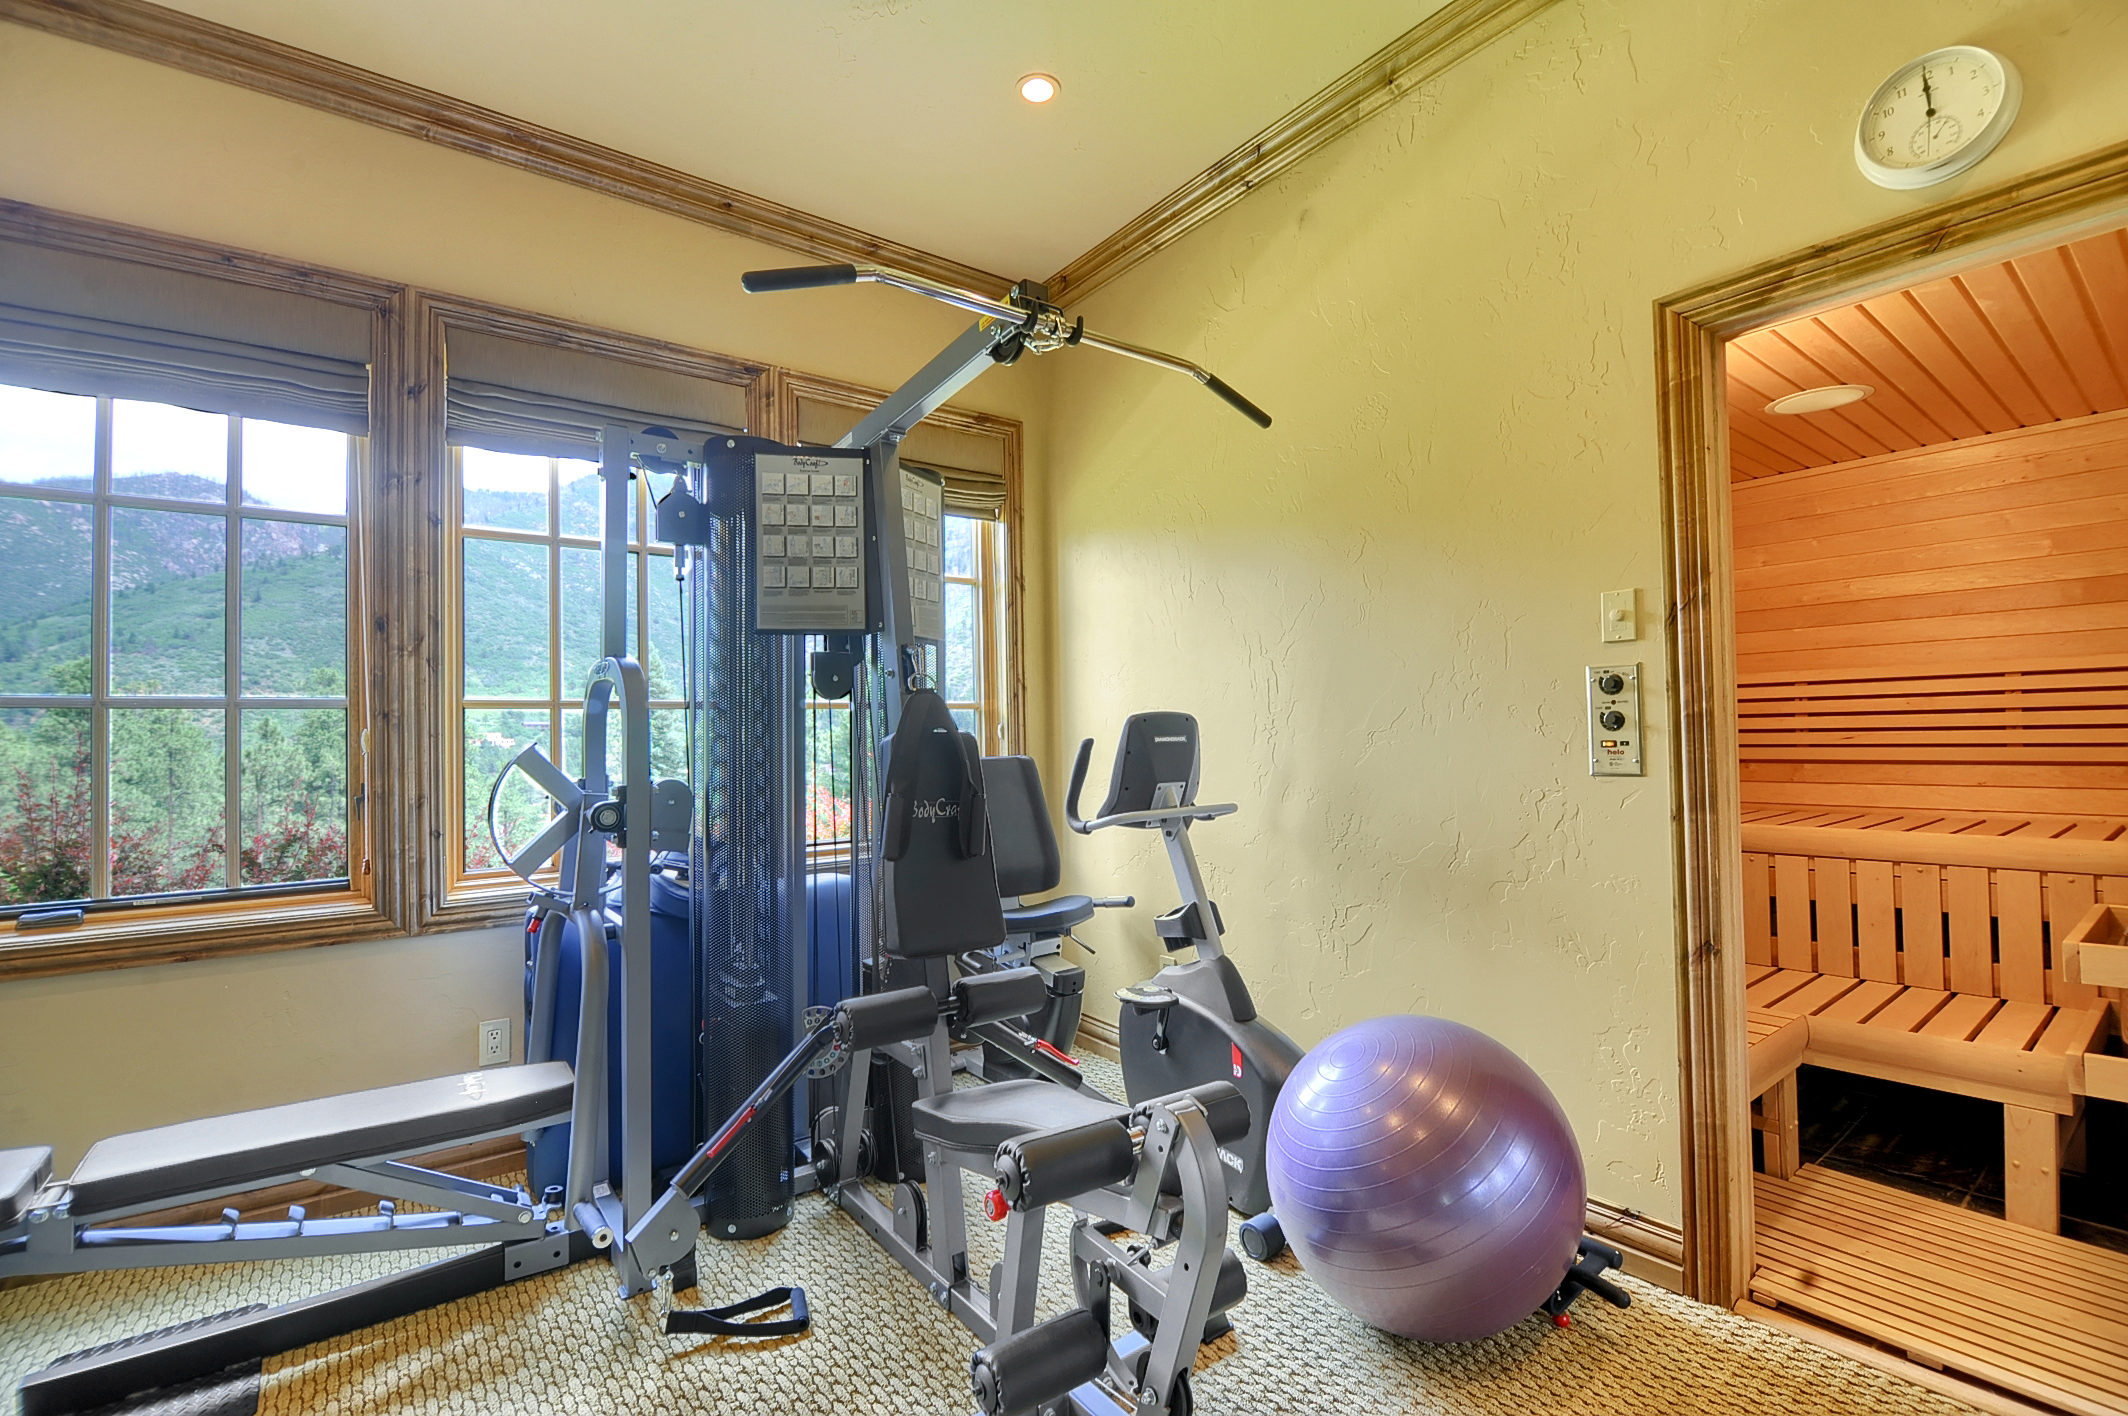 22 - Exercise Room:Sauna.jpg